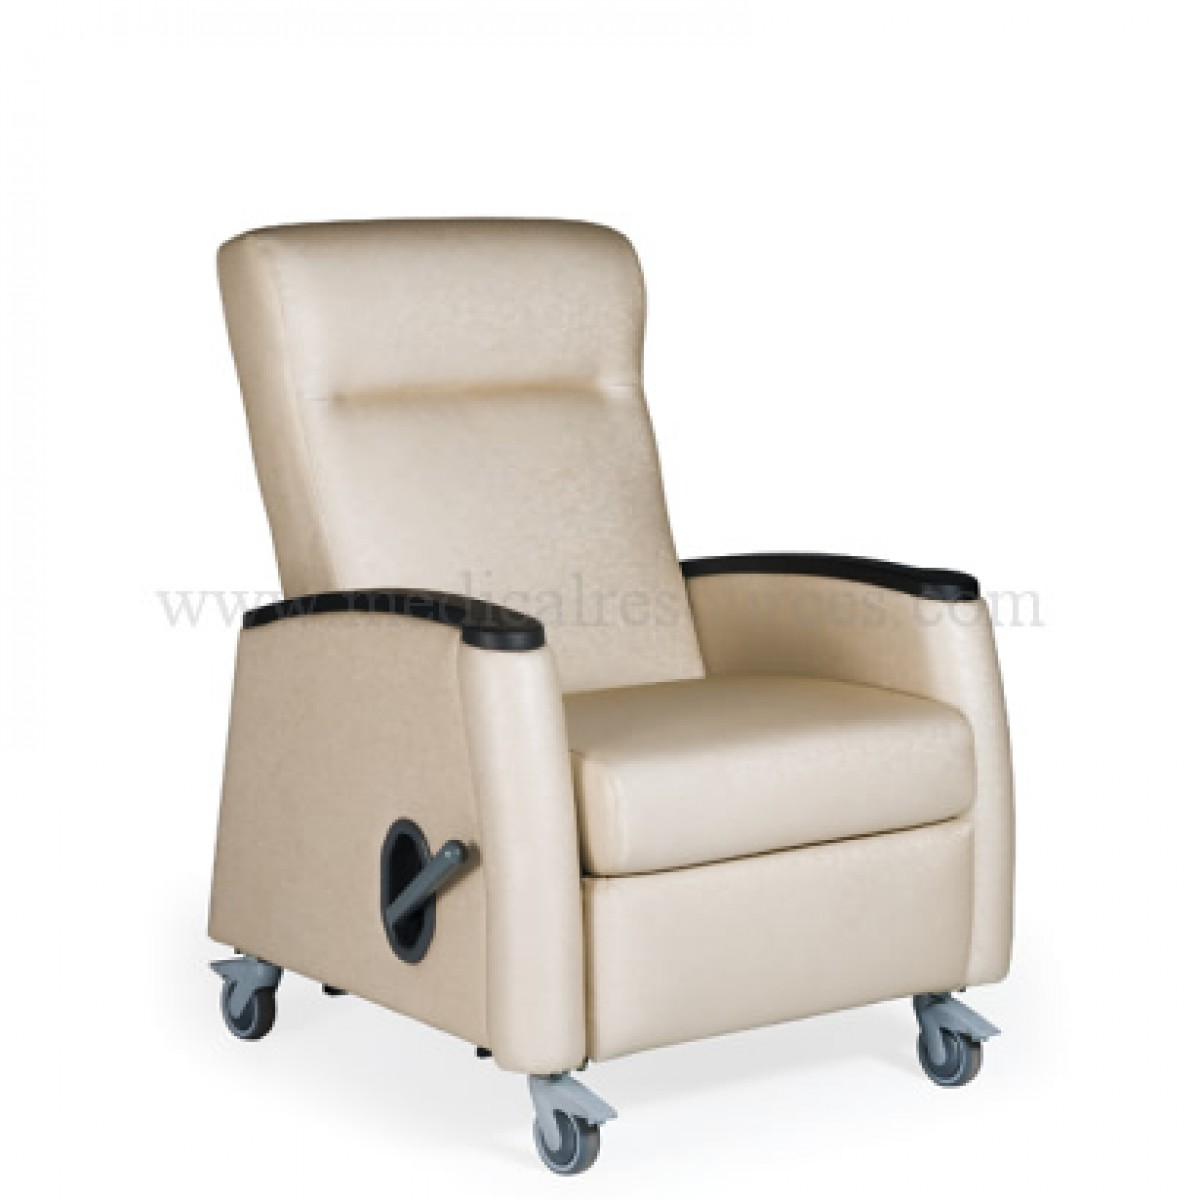 living pri b fabric ds birch swivel the coffee brown depot home recliner room n chairs furniture adult recliners hill